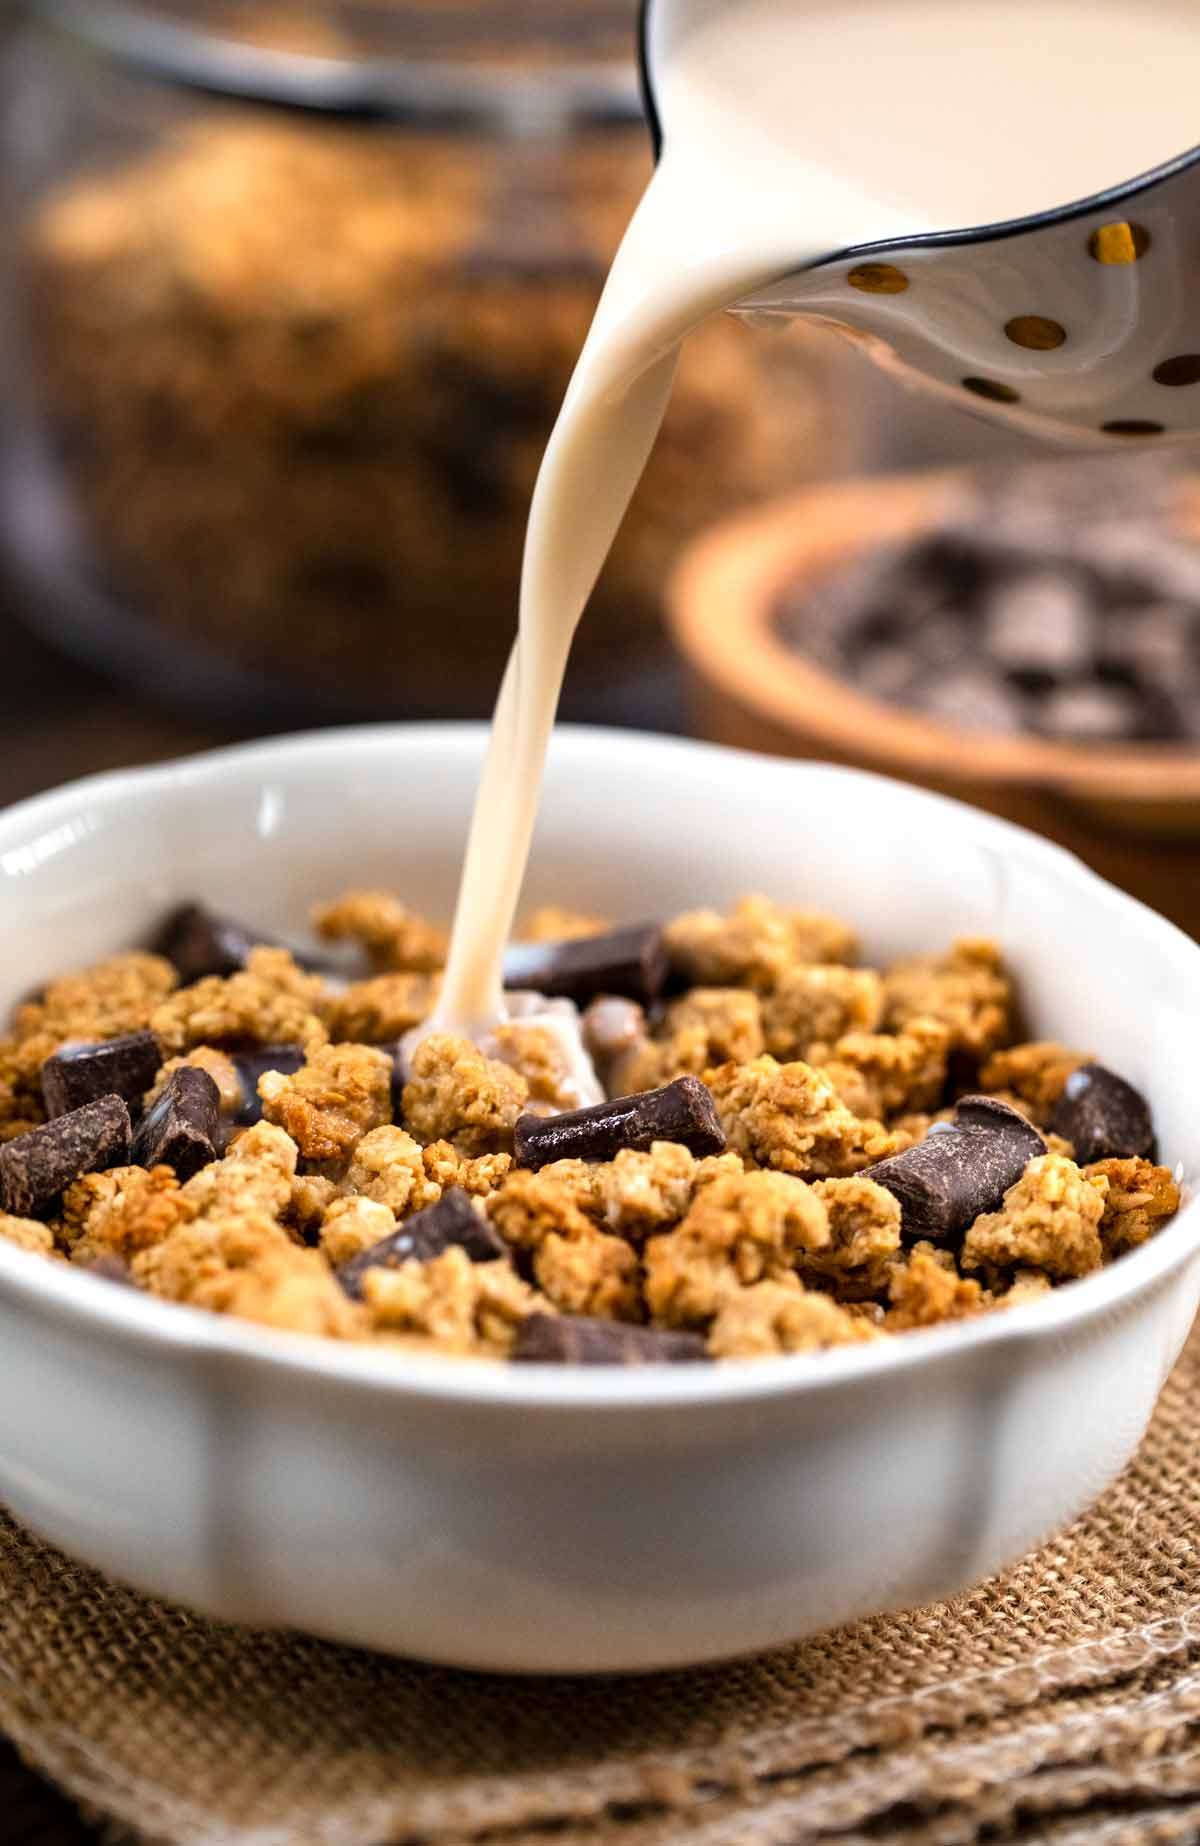 A white bowl filled with baked granola with milk being poured on top.